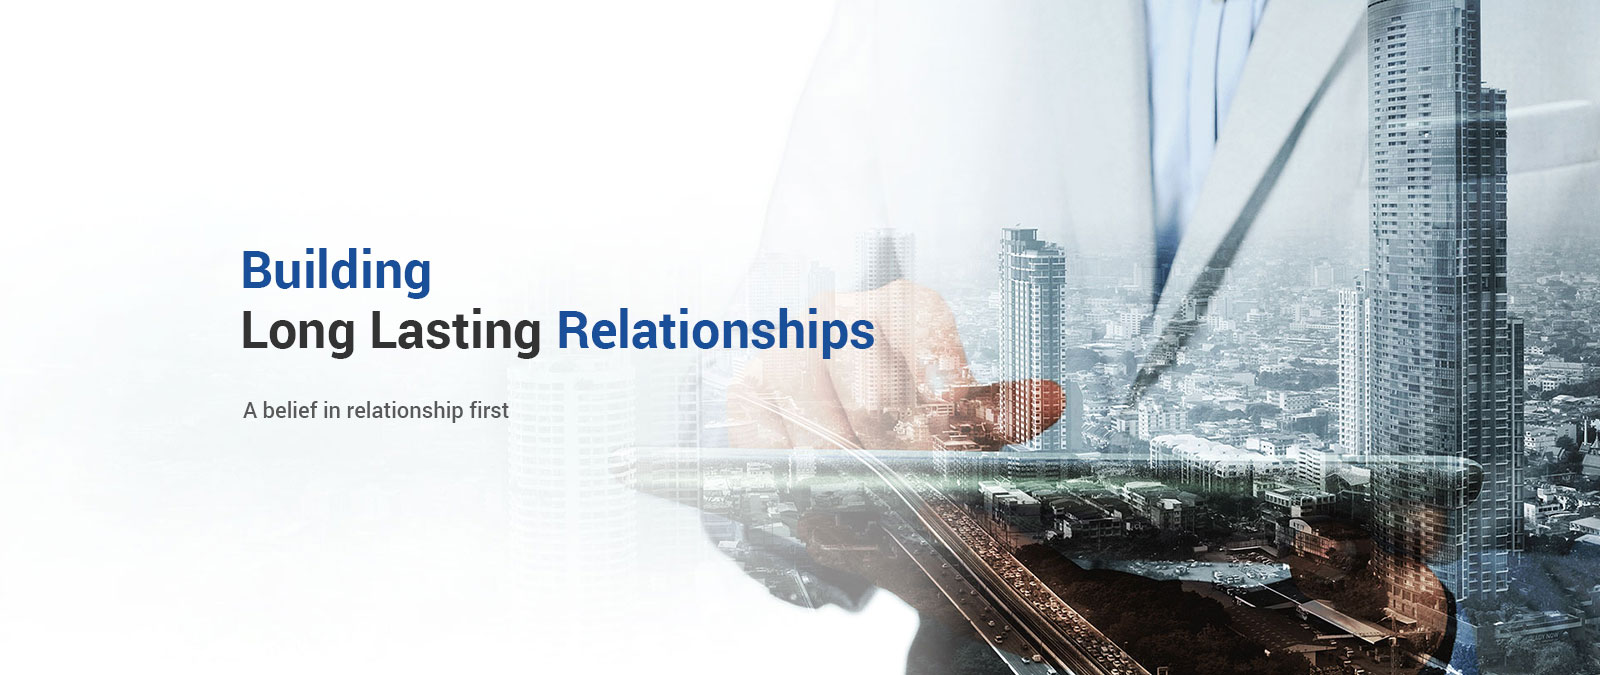 Building Long Lasting Relationships - A belief in relationship first